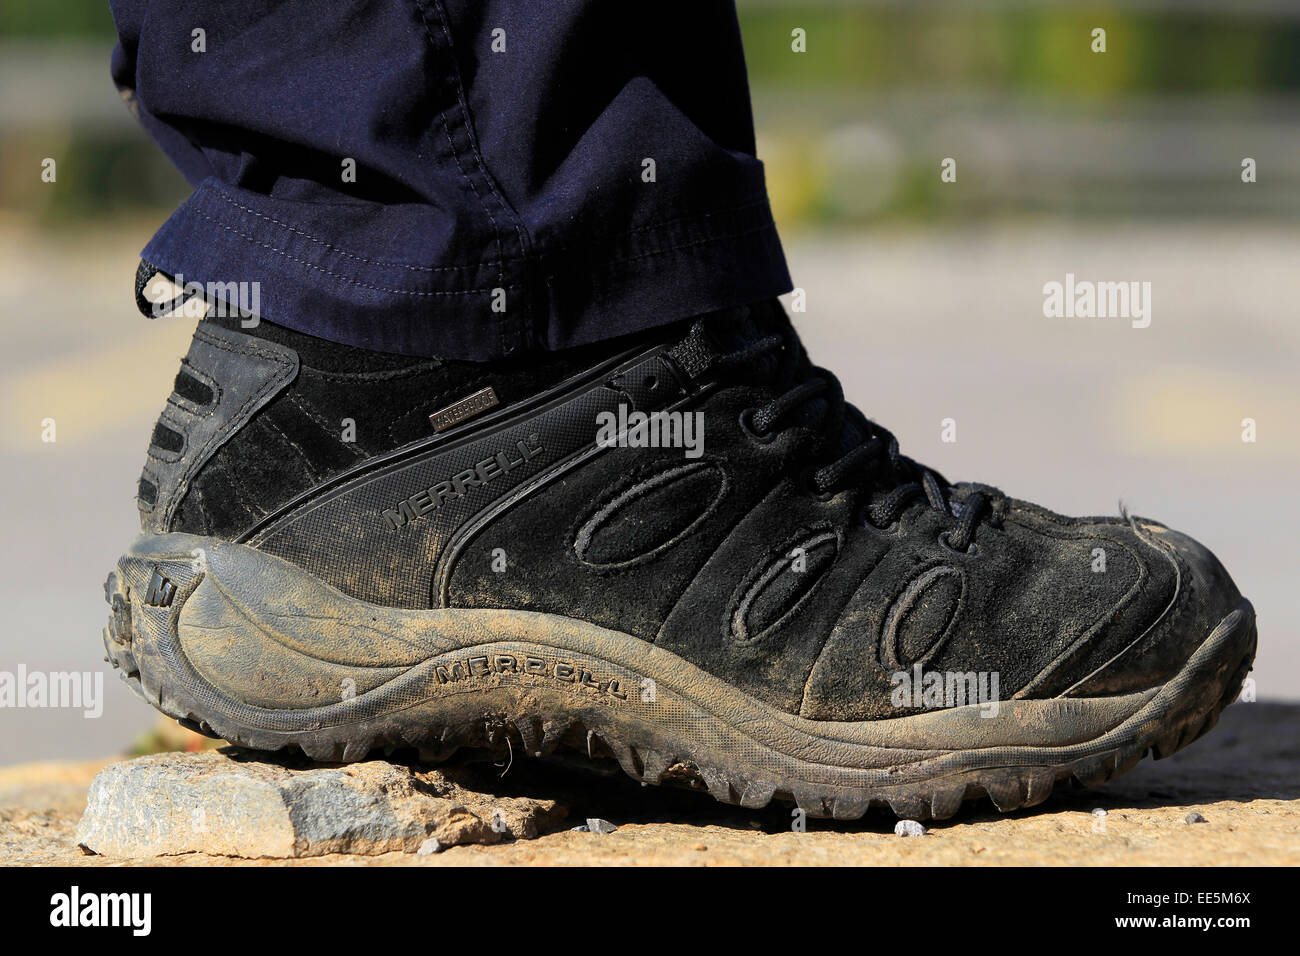 Keeping fit - healthy lifestyle - muddy black walking boot close up - Stock Image